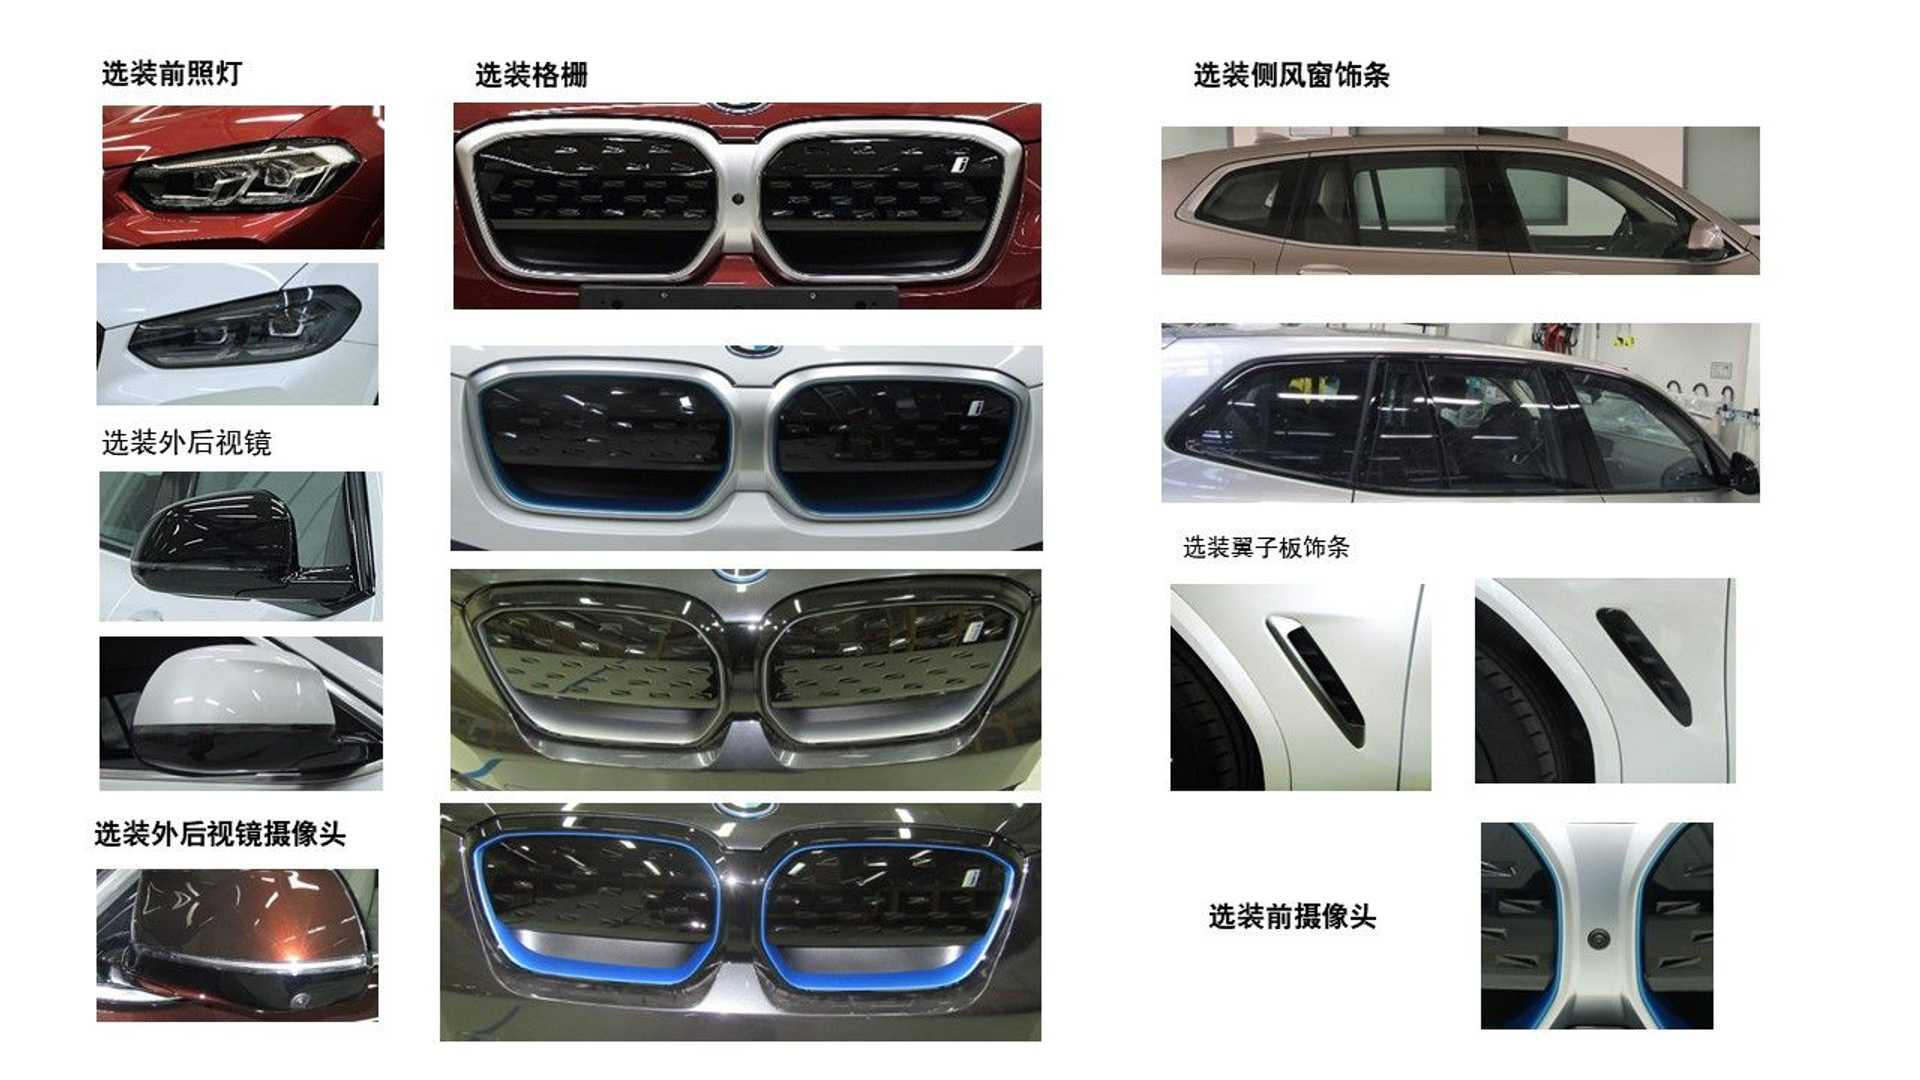 2022-bmw-ix3-facelift-homologated-in-china-2